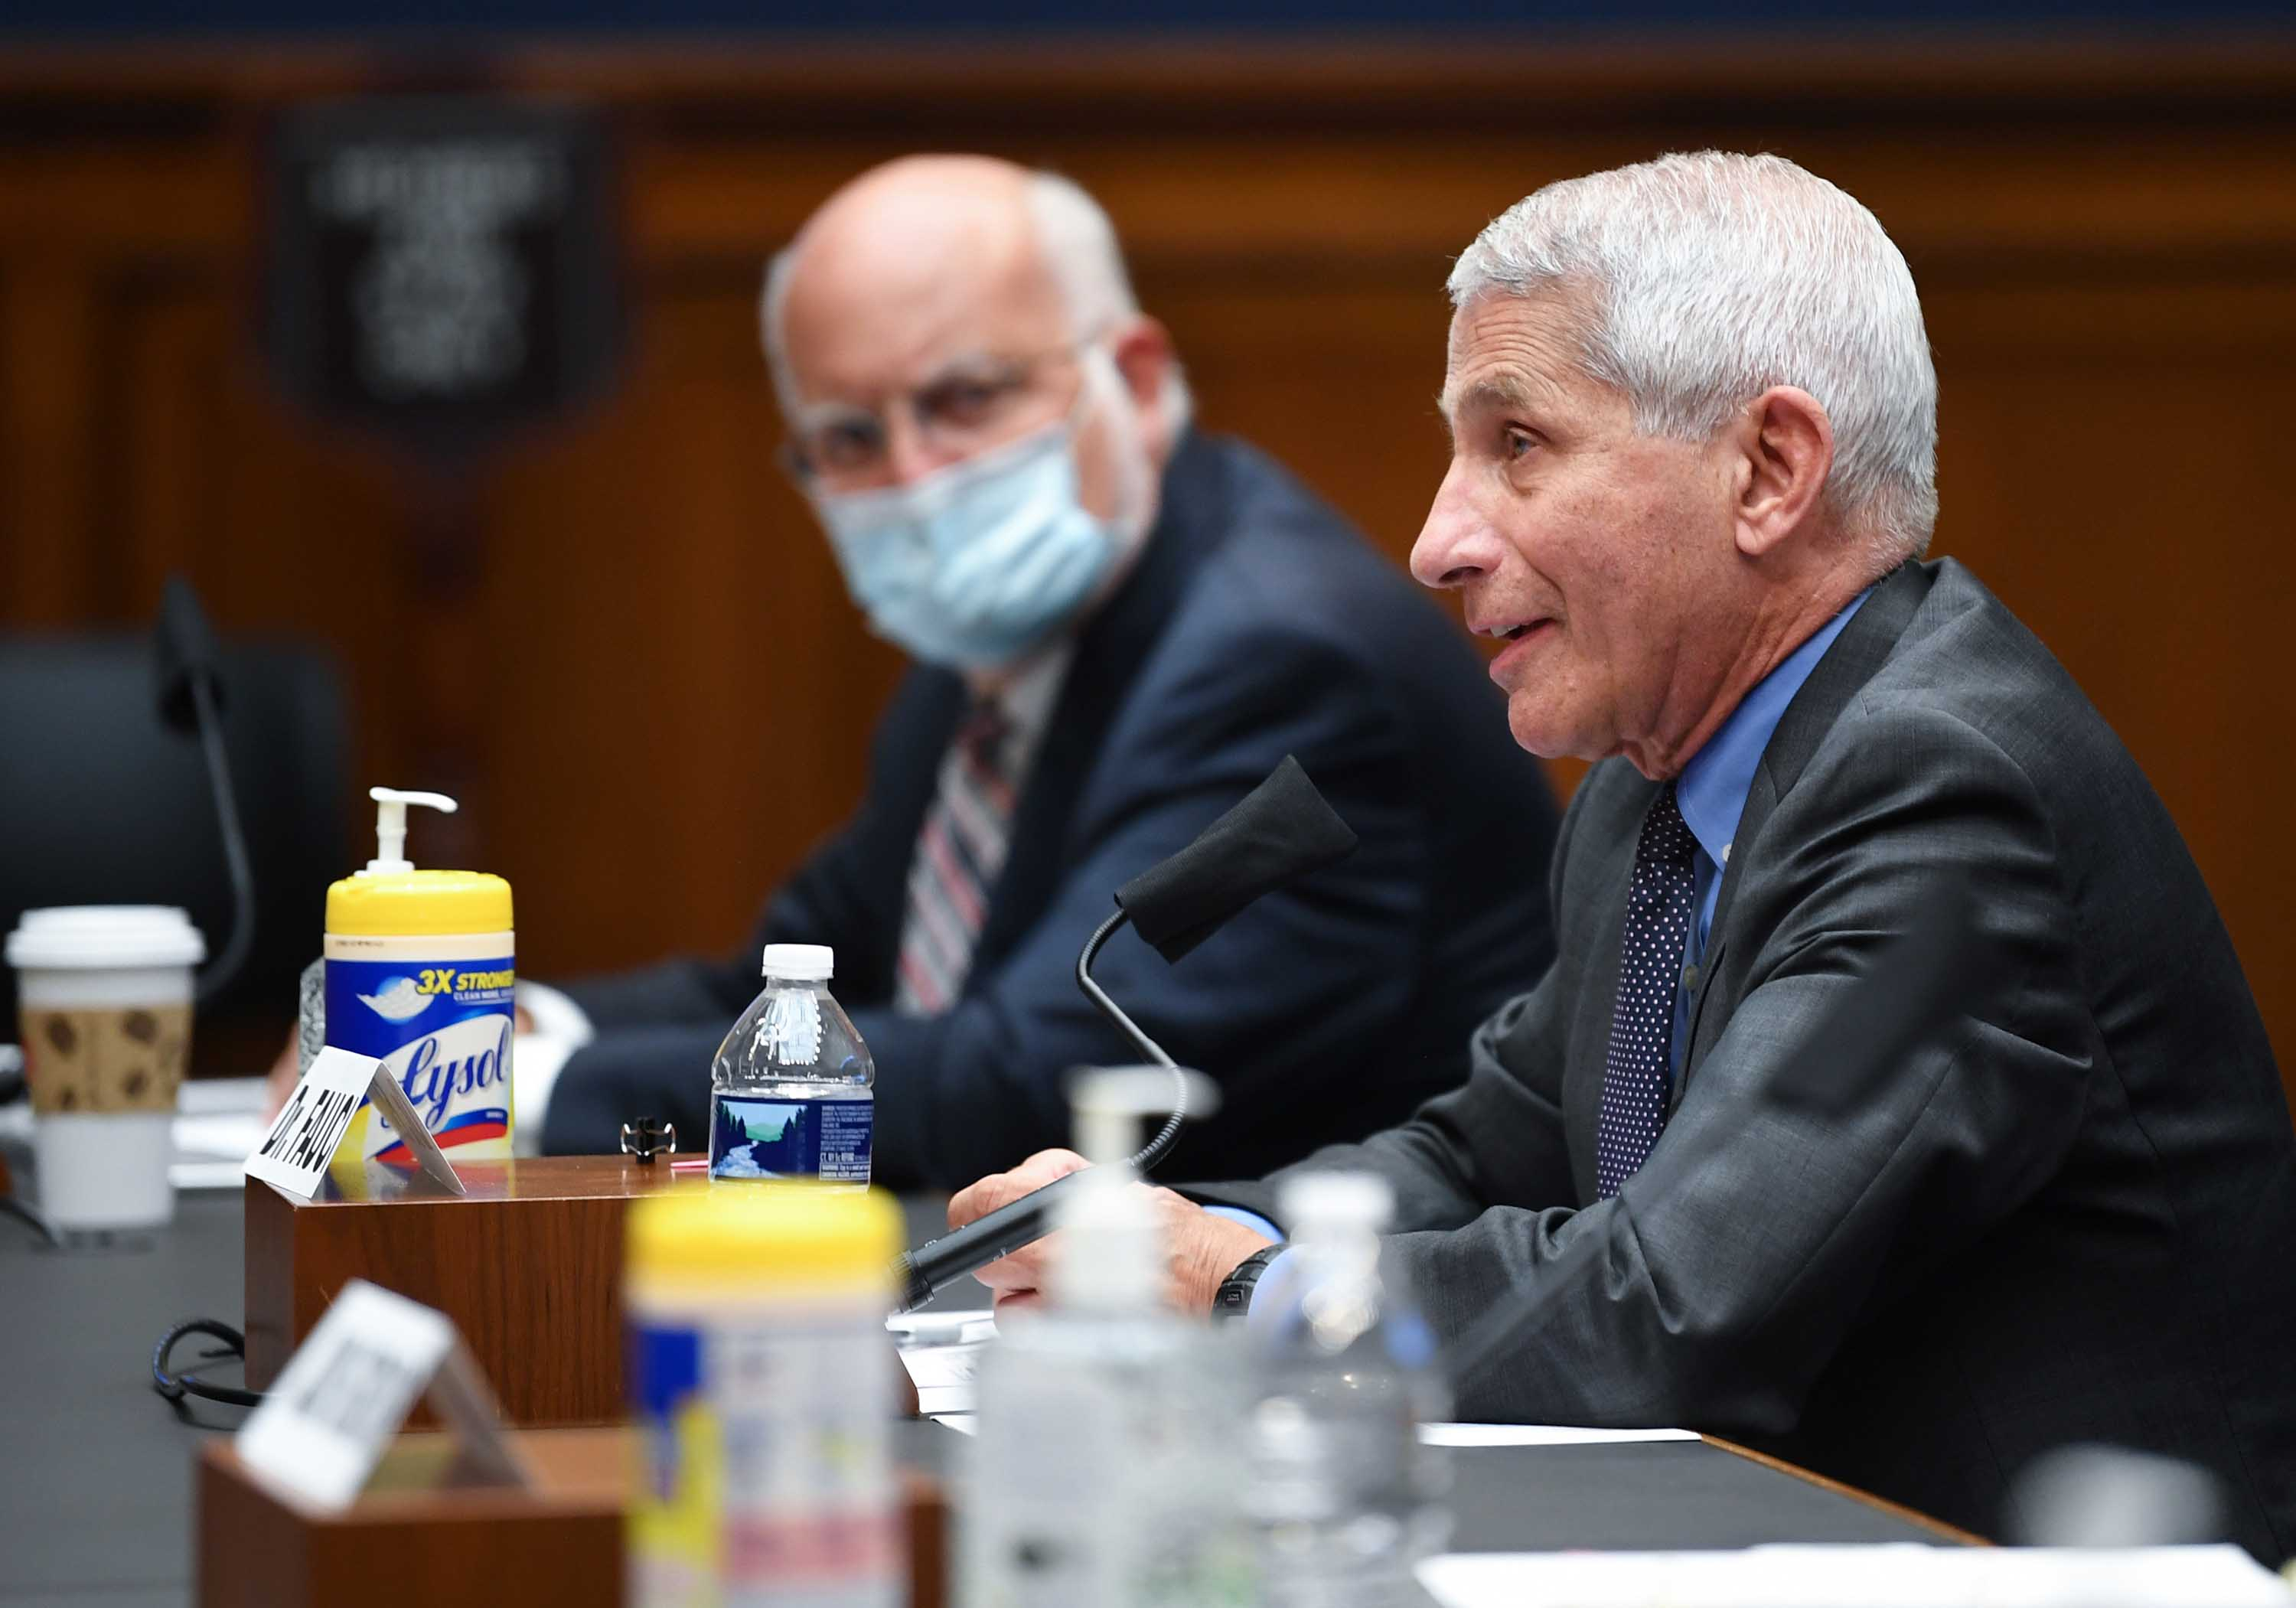 Dr. Robert Redfield, left, listens as Dr. Anthony Fauci testifies before the US Senate Health, Education, Labor, and Pensions Committee hearing to examine Covid-19 on Capitol Hill in Washington on June 23.